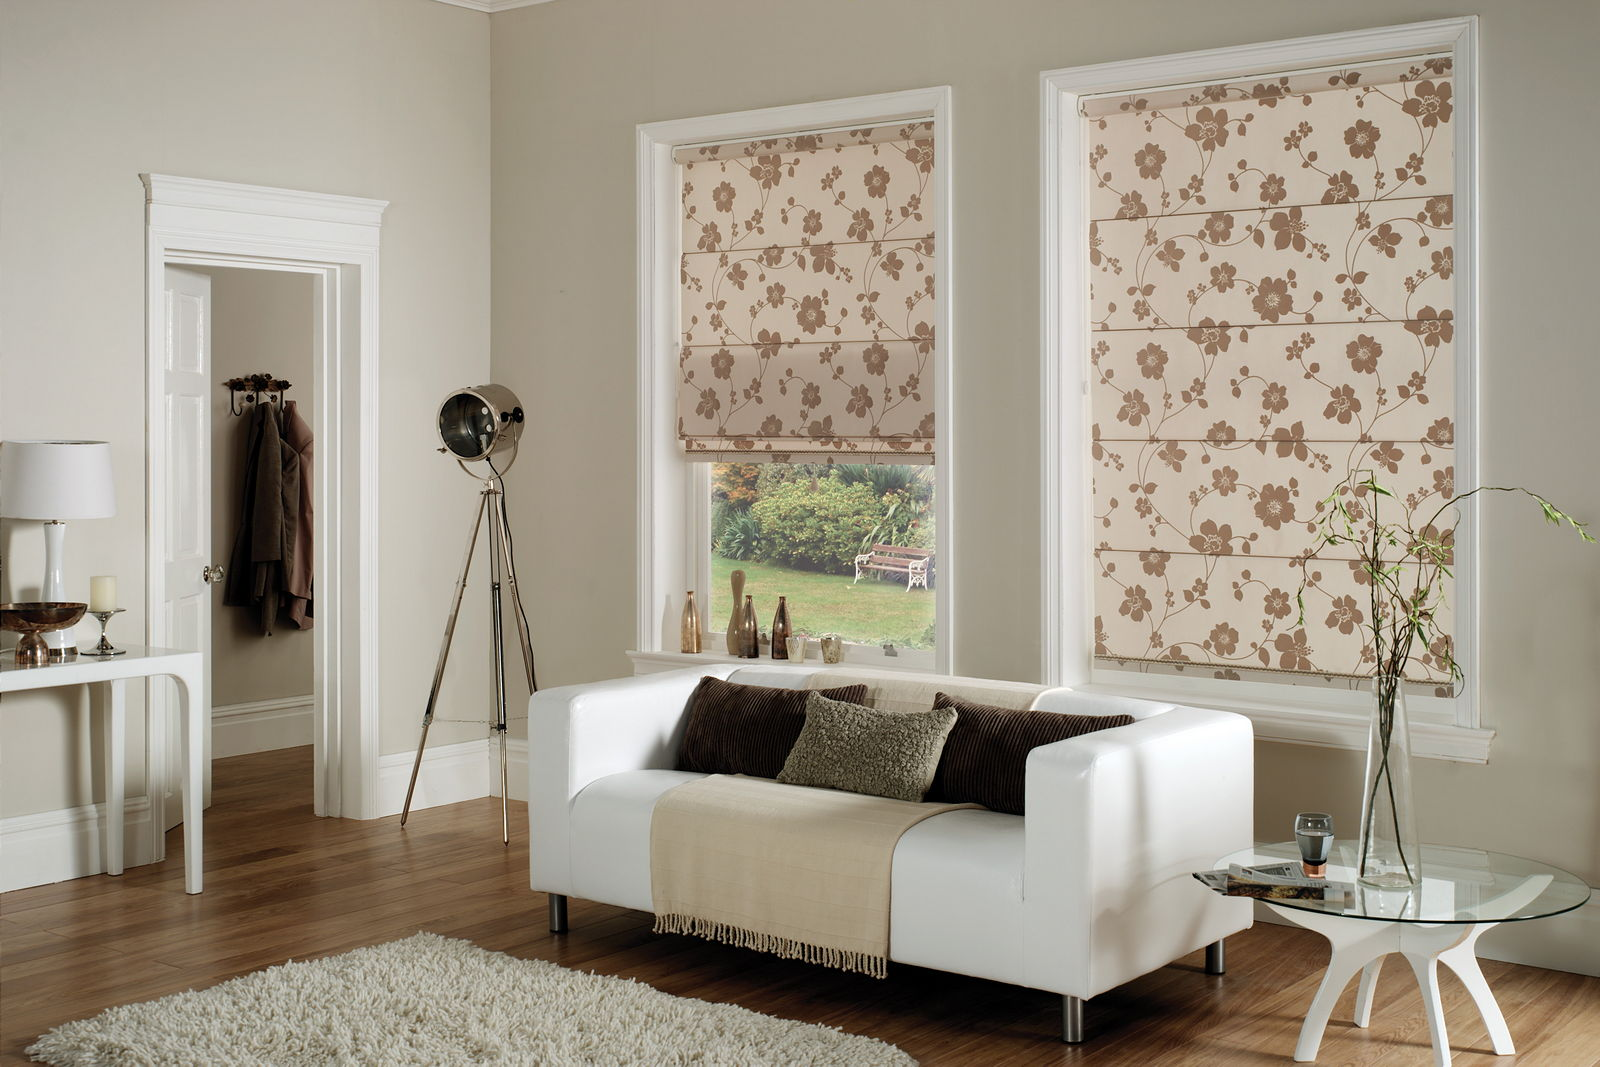 Shop our best selection of Living Room Window Curtains to reflect your style and inspire your home. Find the perfect decorative accents at Hayneedle, where you can buy online while you explore our room designs and curated looks for tips, ideas & inspiration to help you along the way.